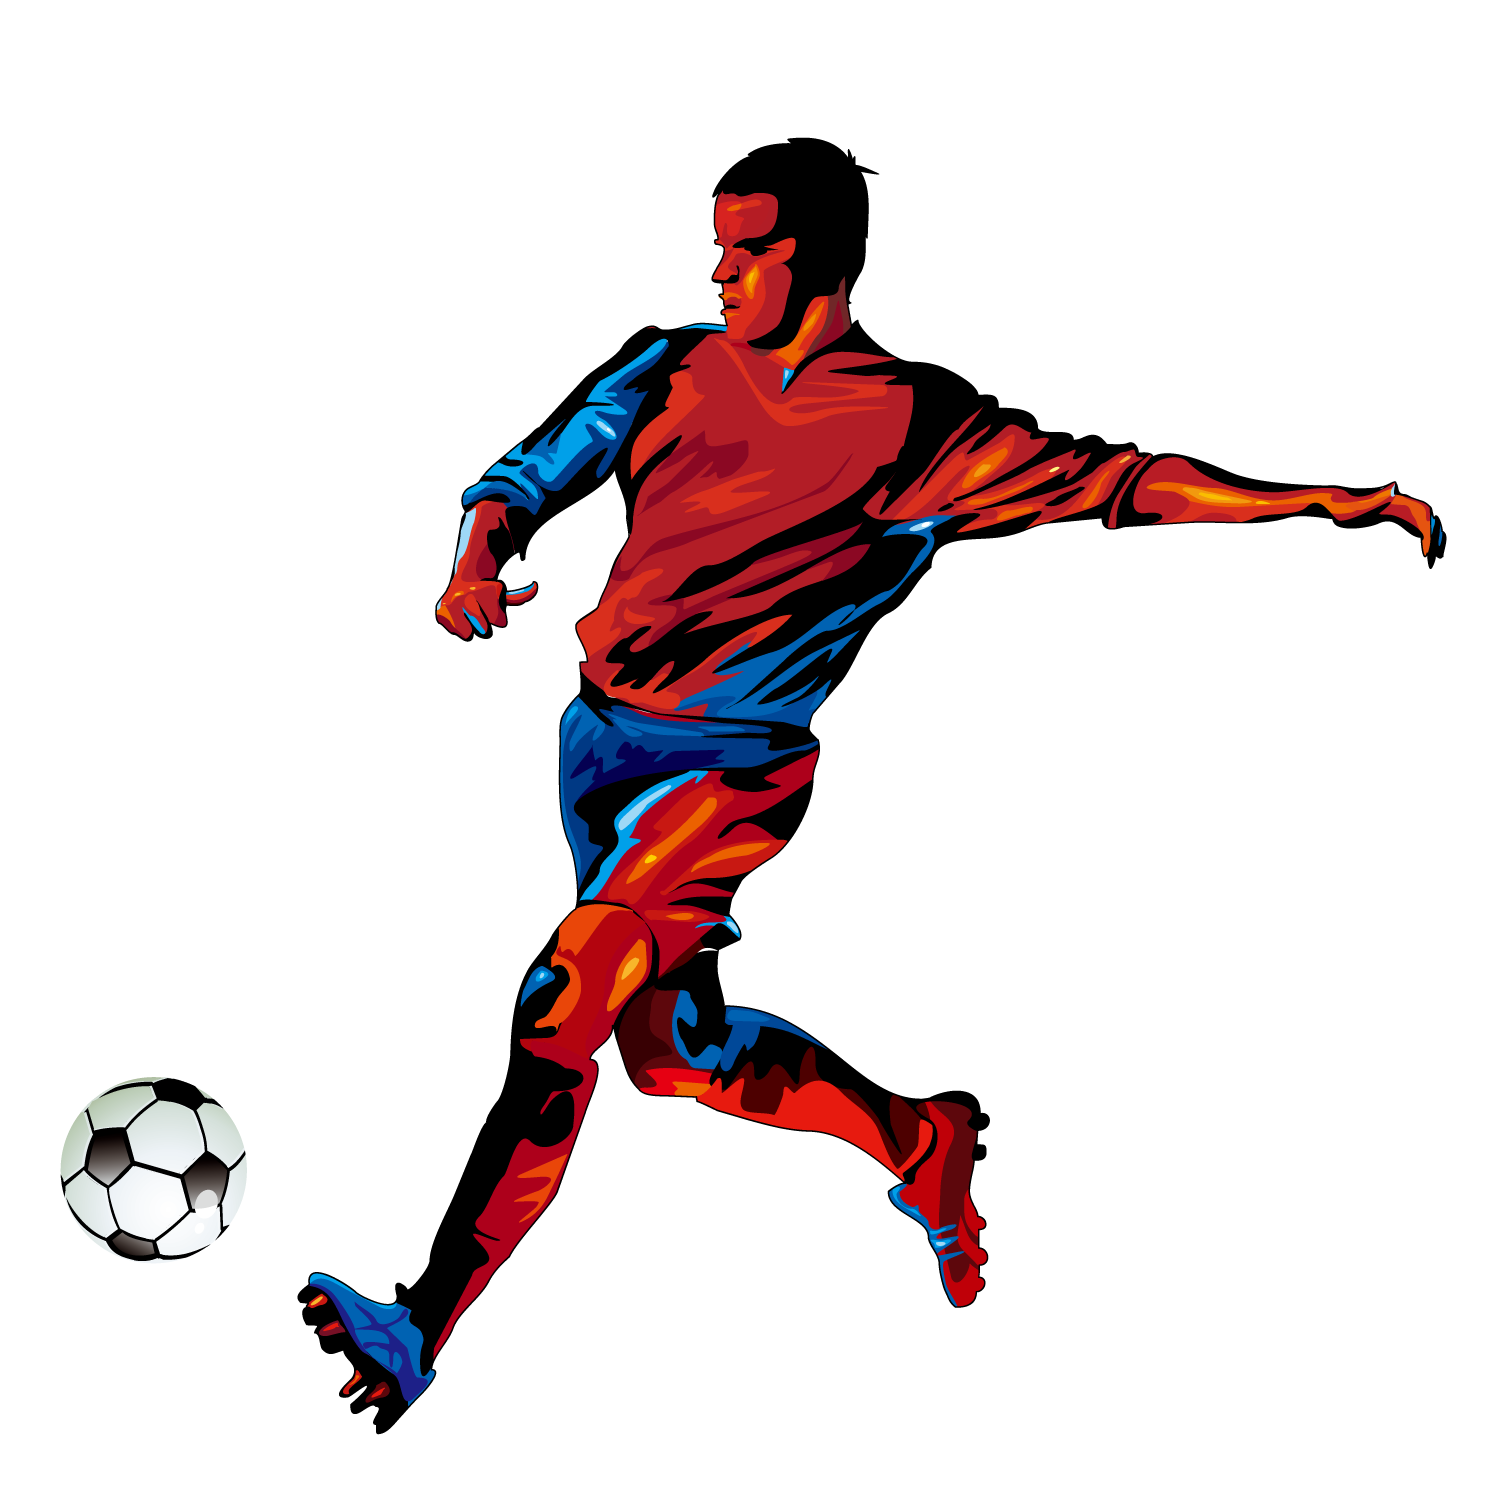 Game clipart played. Football free download peoplepng